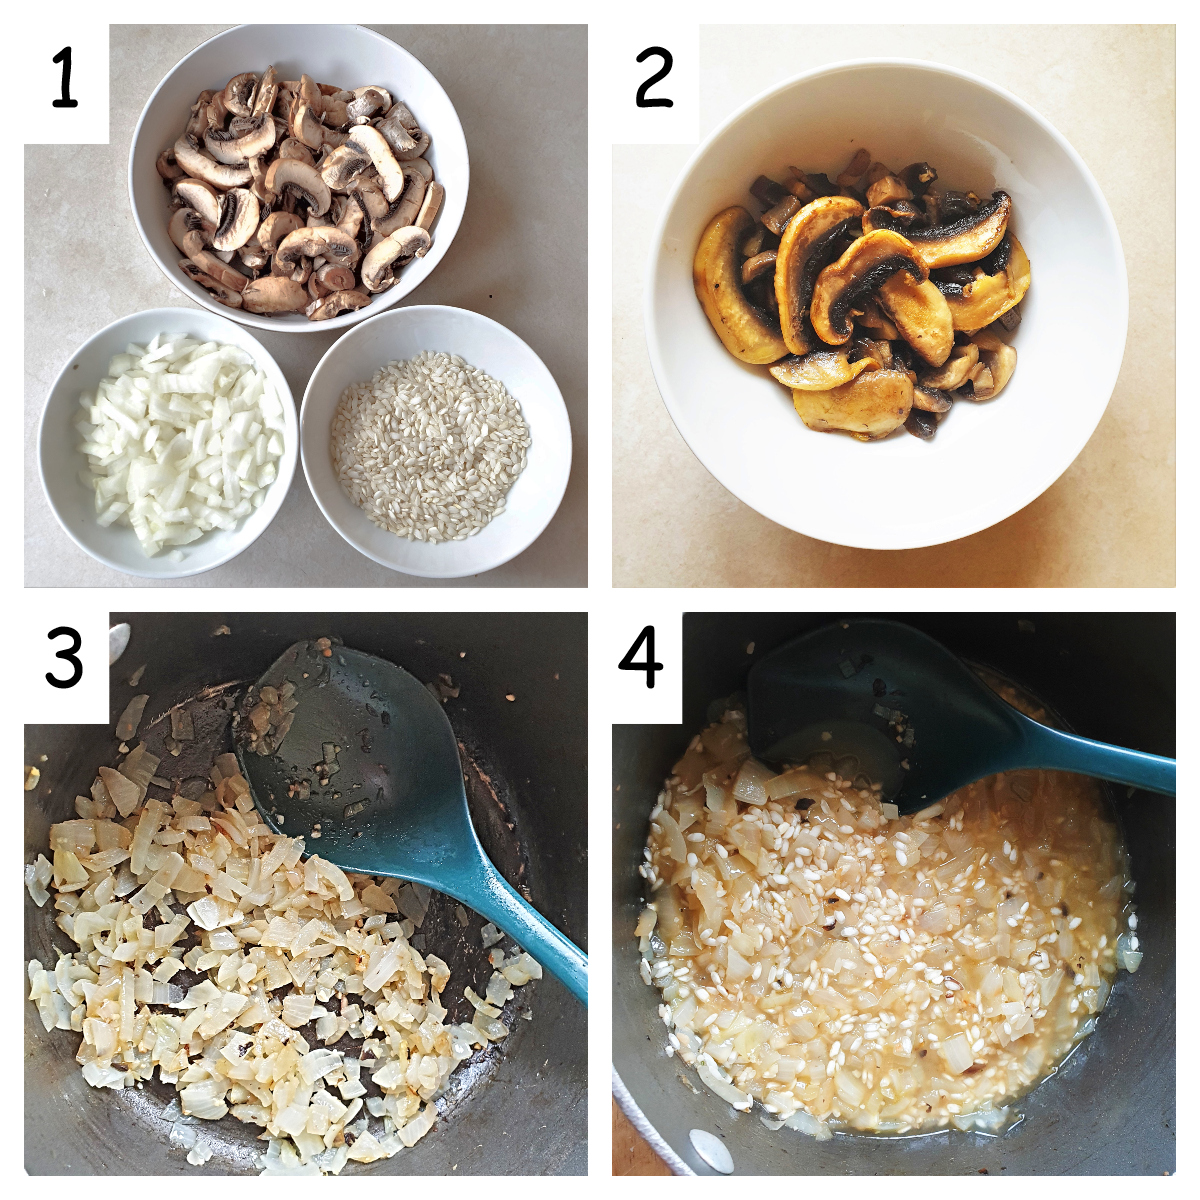 A collage of 4 images showing how to chop the onions and mushrooms and how to fry them with the rice.